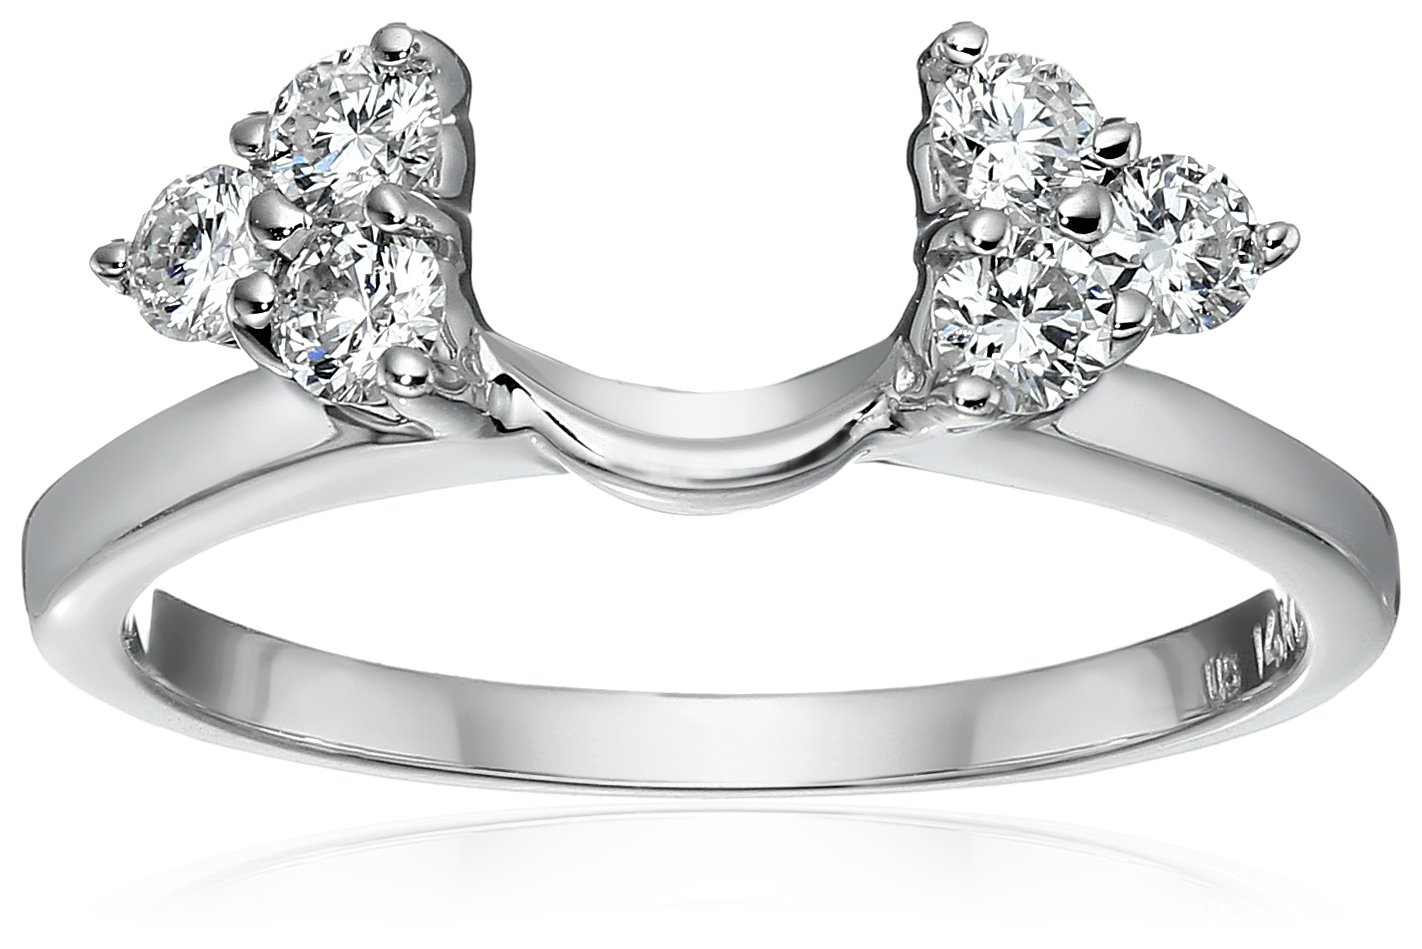 14k White Gold Round Diamond Solitaire Engagement Ring Enhancer (1/3 carat, H-I Color, I1-I2 Clarity), Size 6